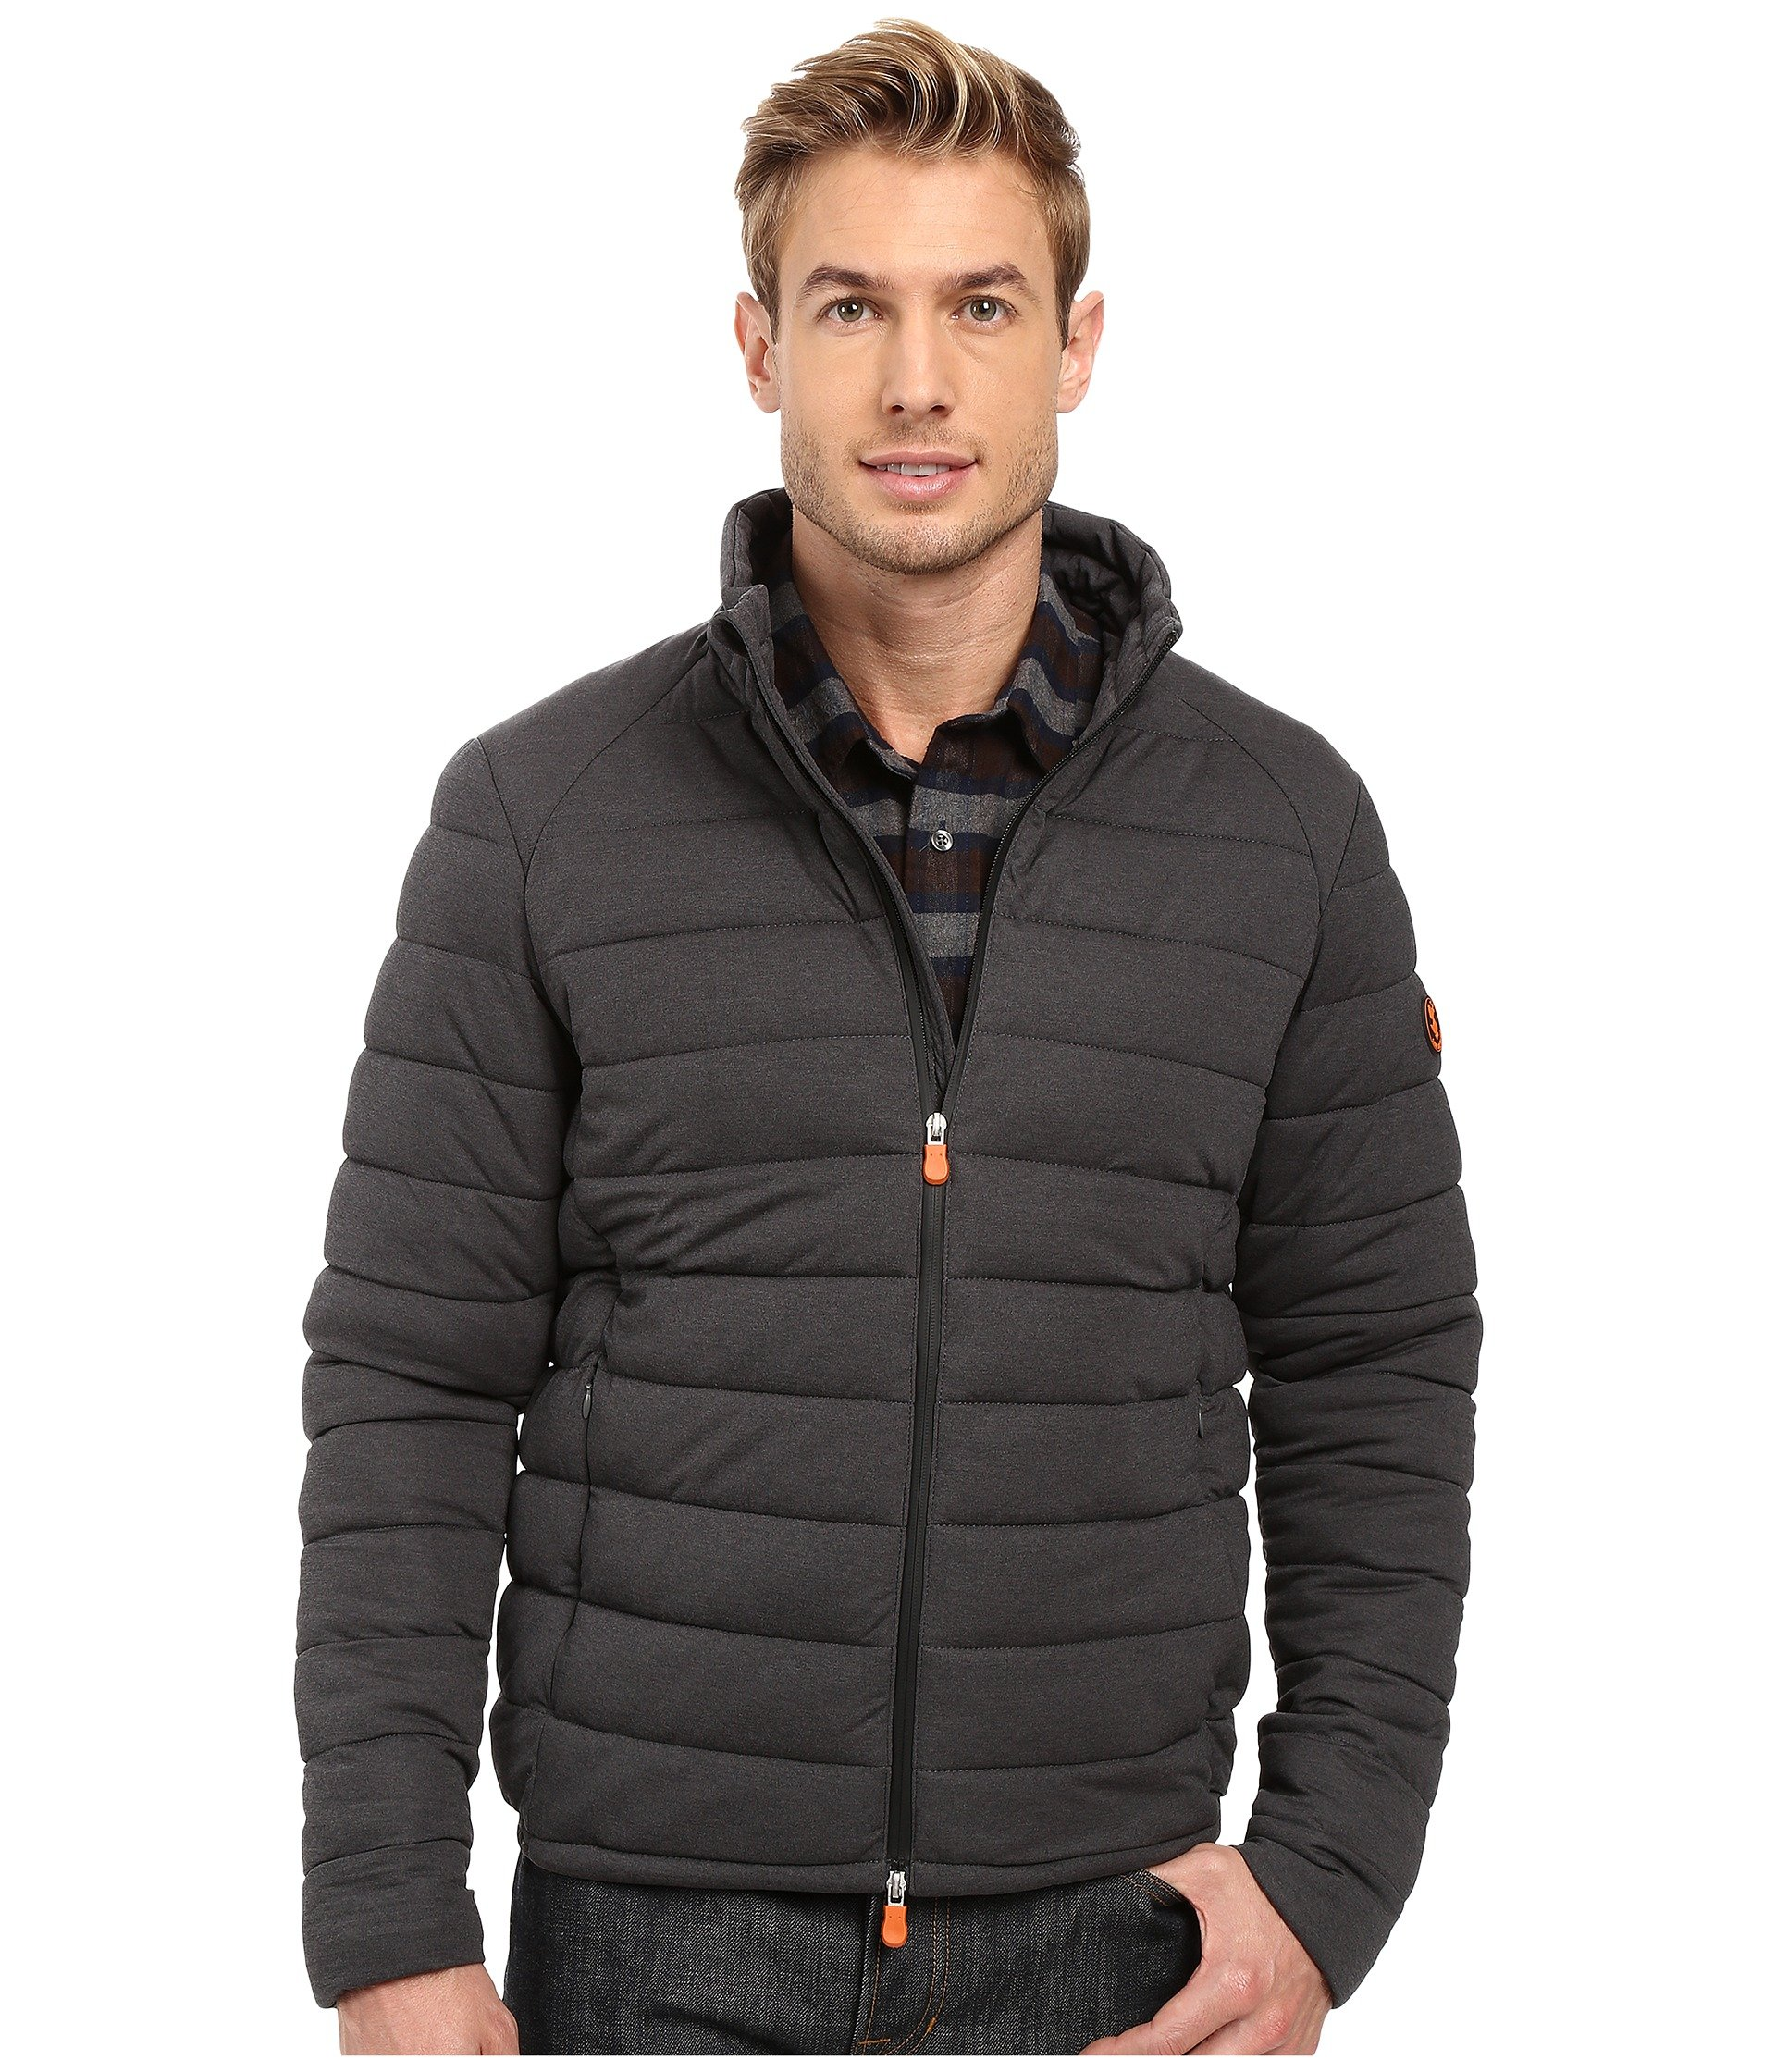 the men jacket old jackets regatta black front s barns barn mens calderdale ii product